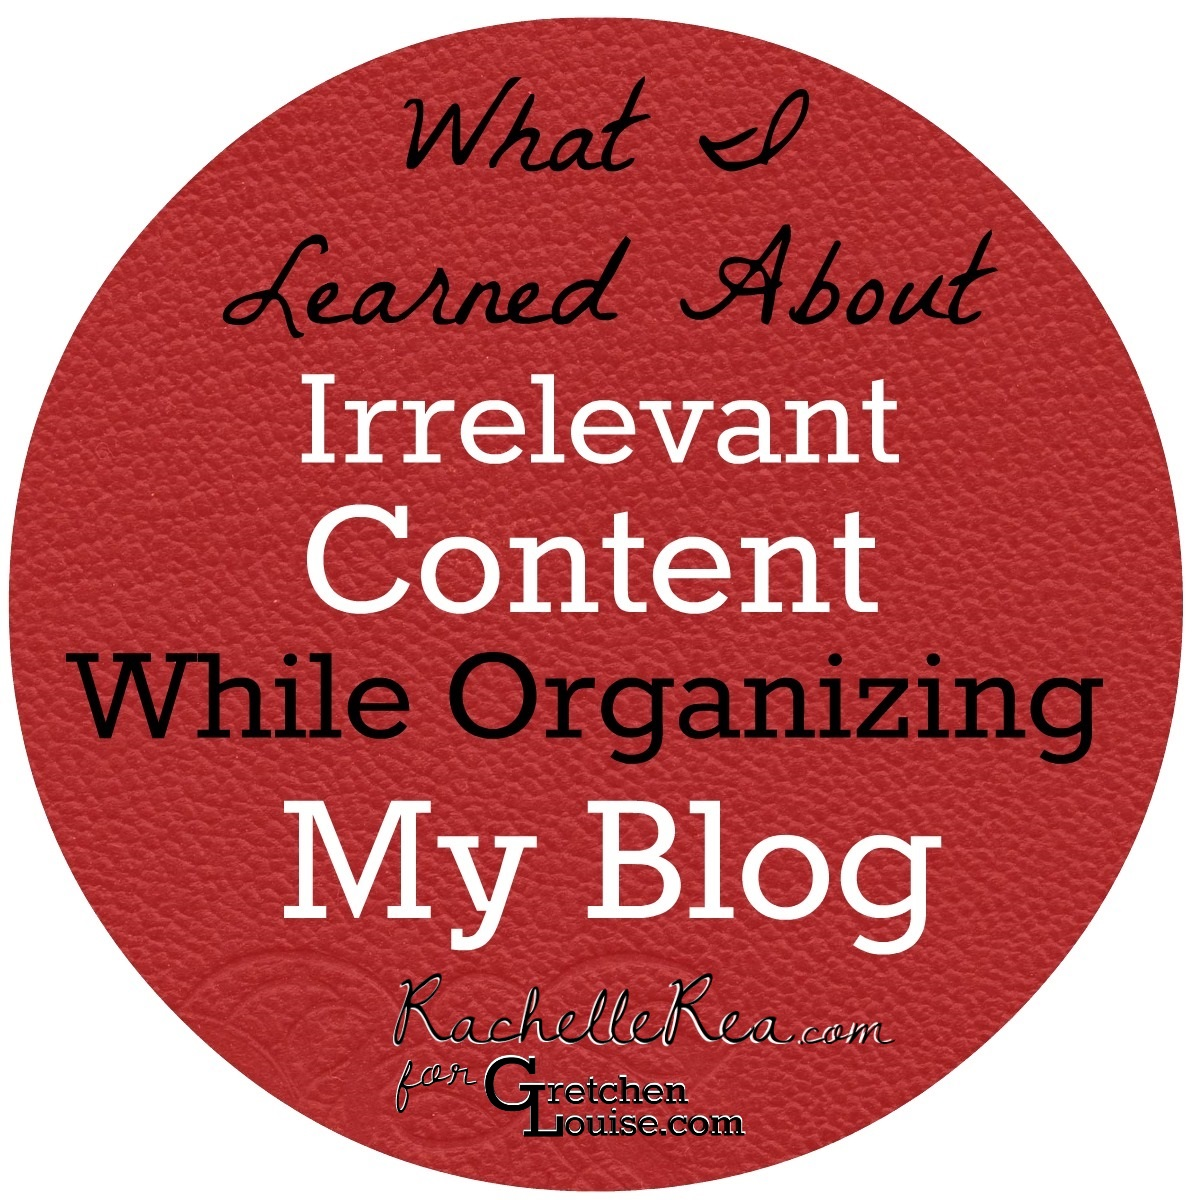 What I Learned About Irrelevant Content While Organizing My Blog